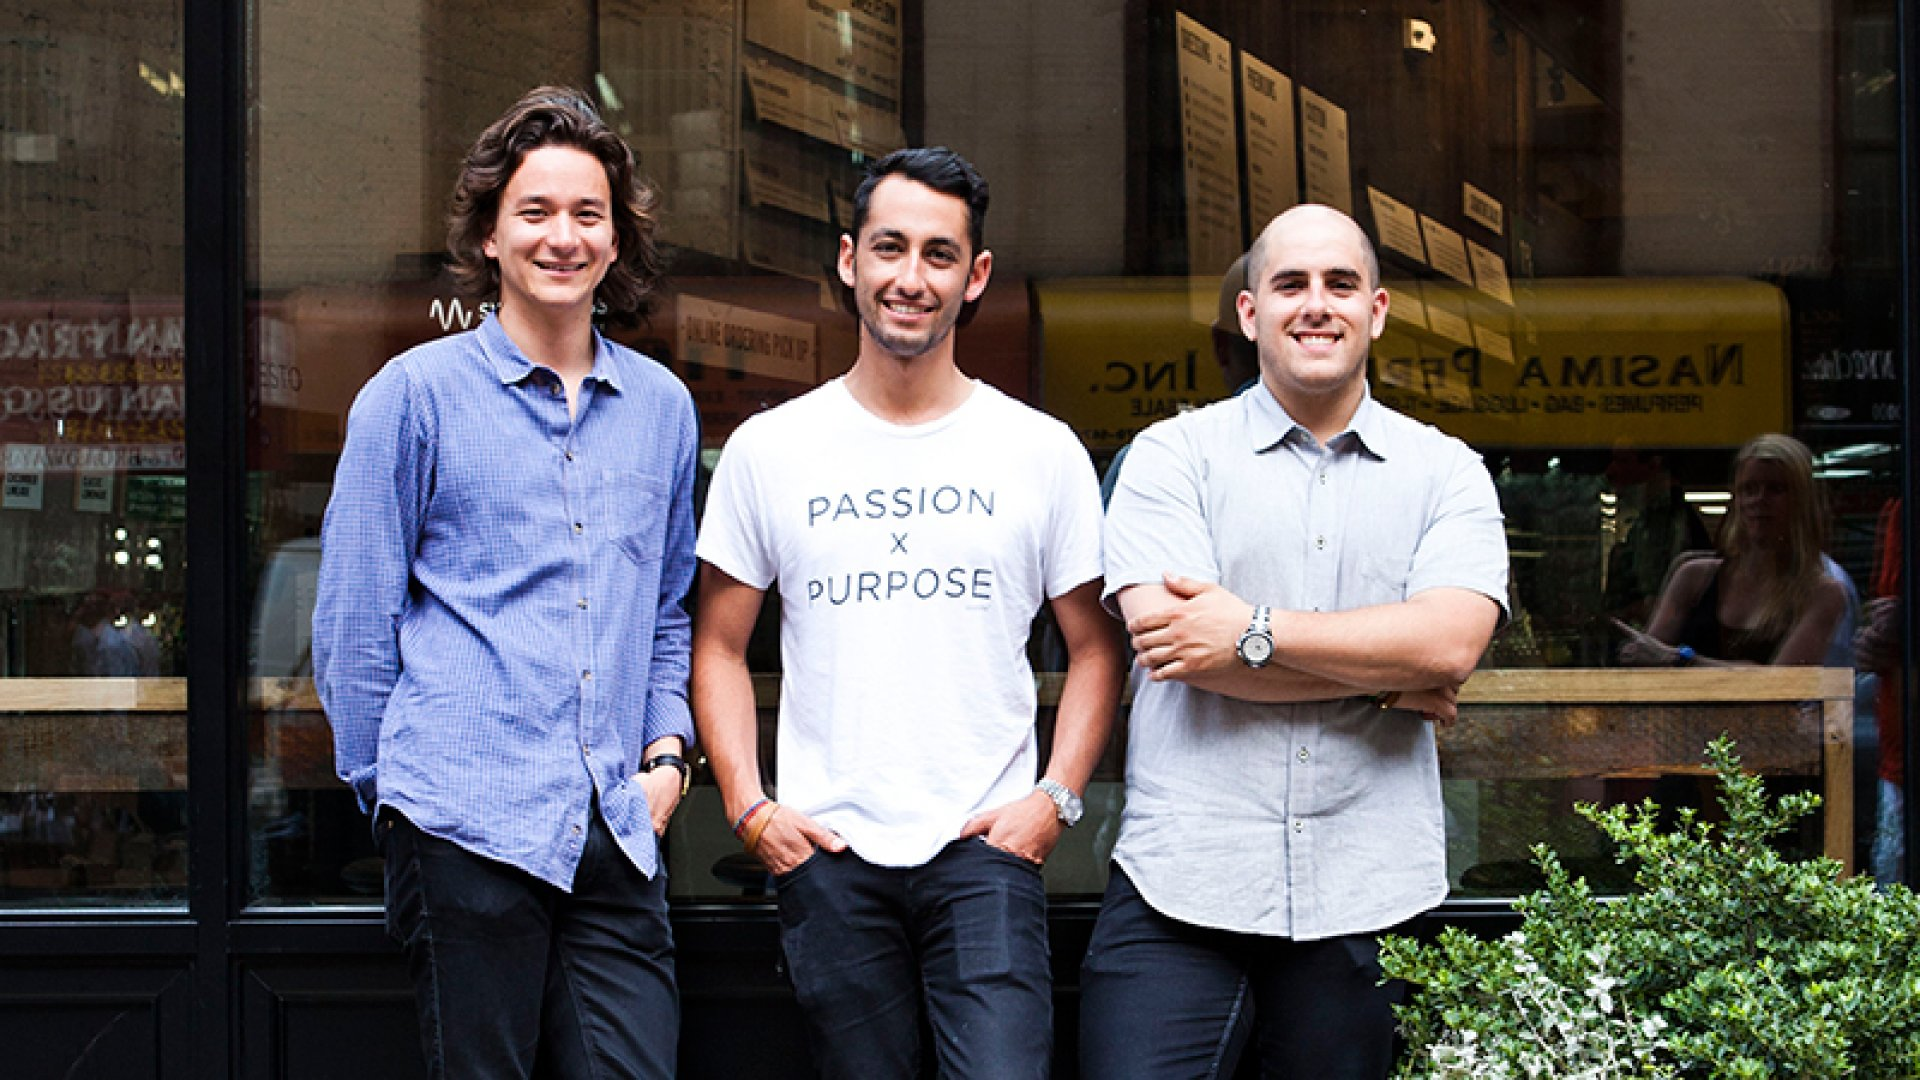 Sweetgreen's co-founders, Nathaniel Ru, Jonathan Neman, and Nicolas Jammet, in front of their location in New York City's NoMad neighborhood.